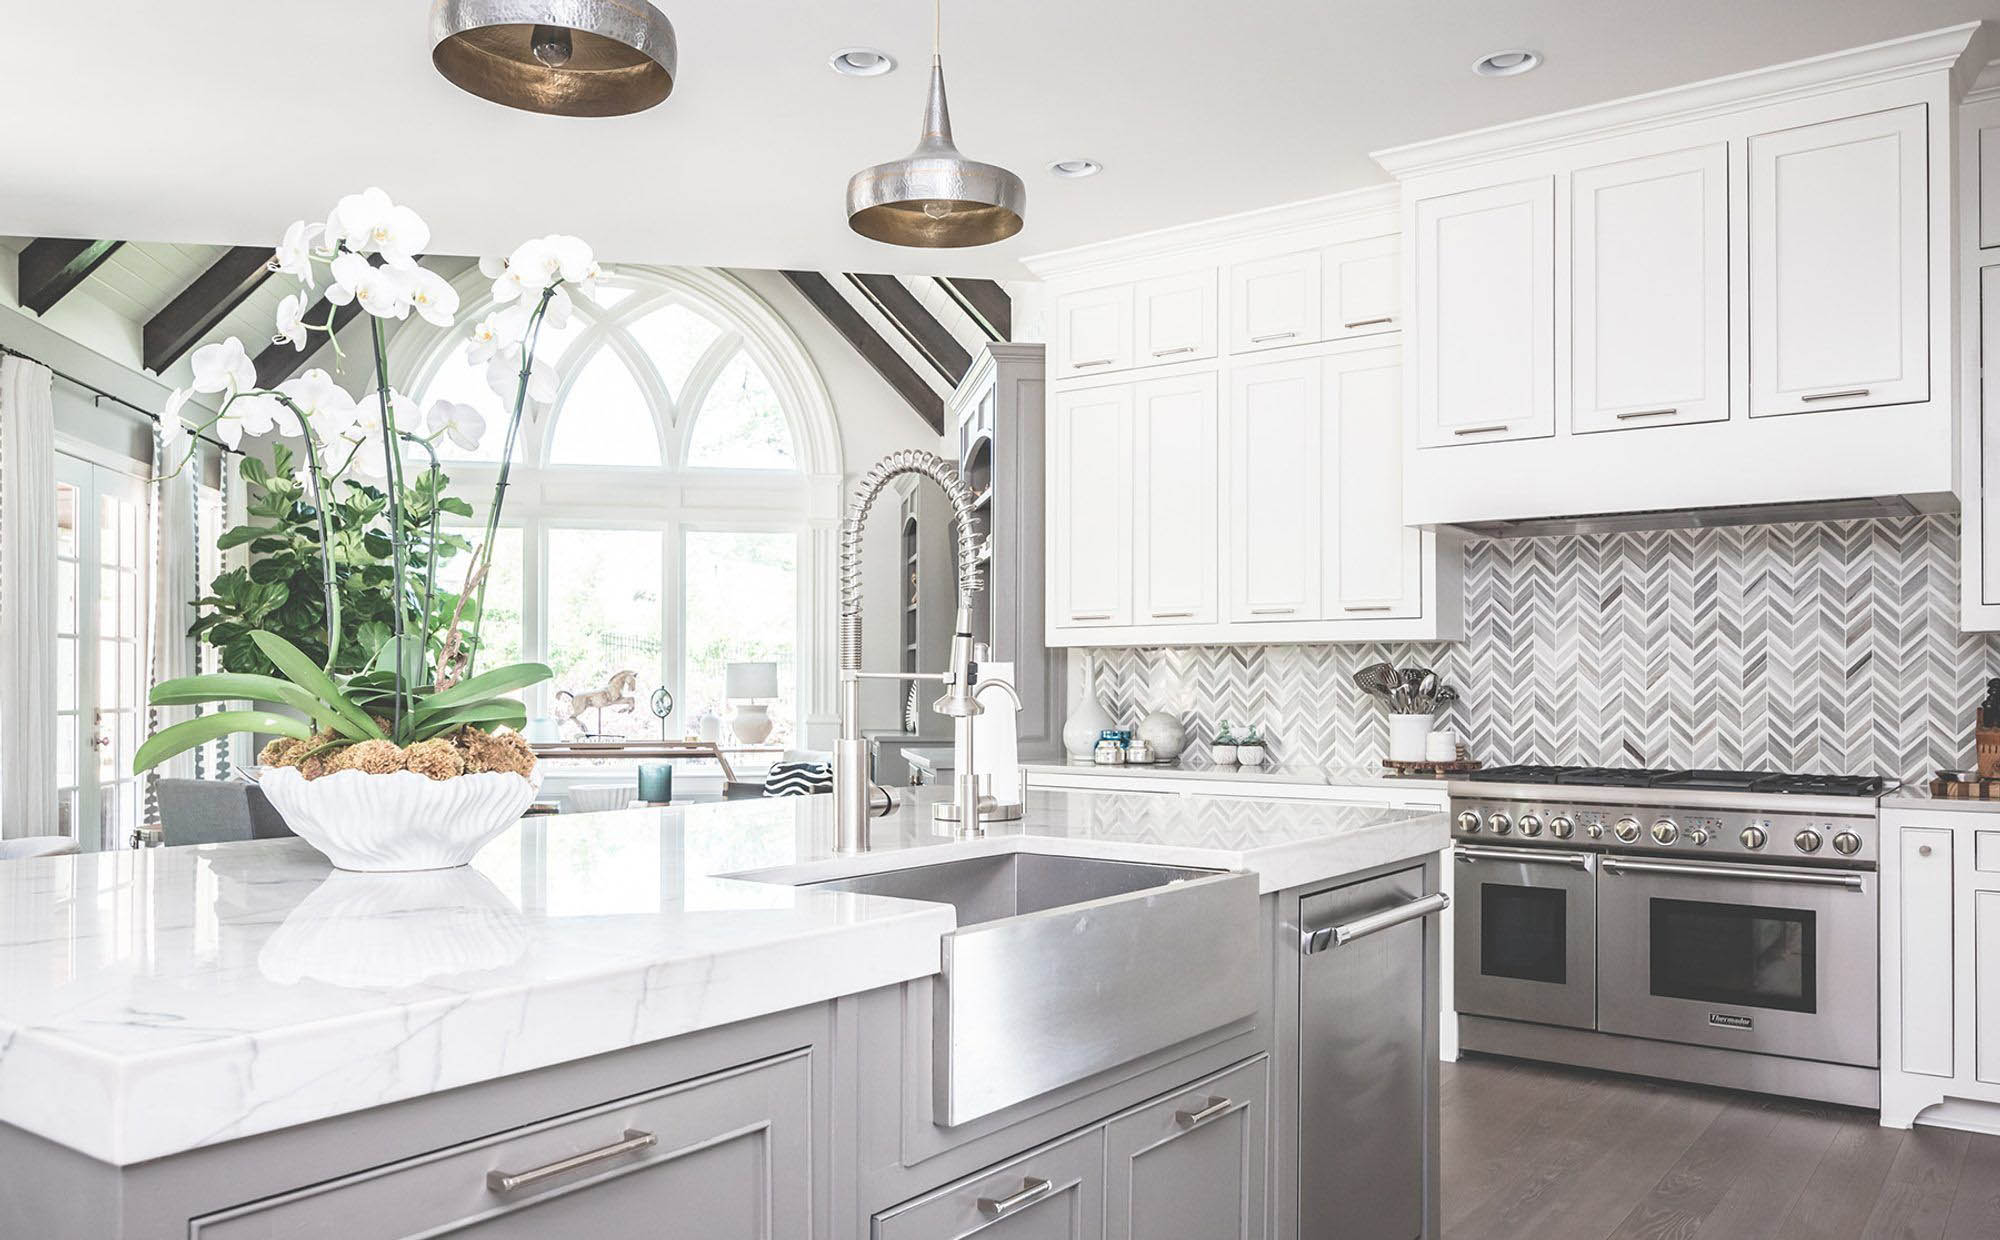 Gray and white kitchen design with white marble quartz counters. Stainless steel appliances. quartz vs granite.